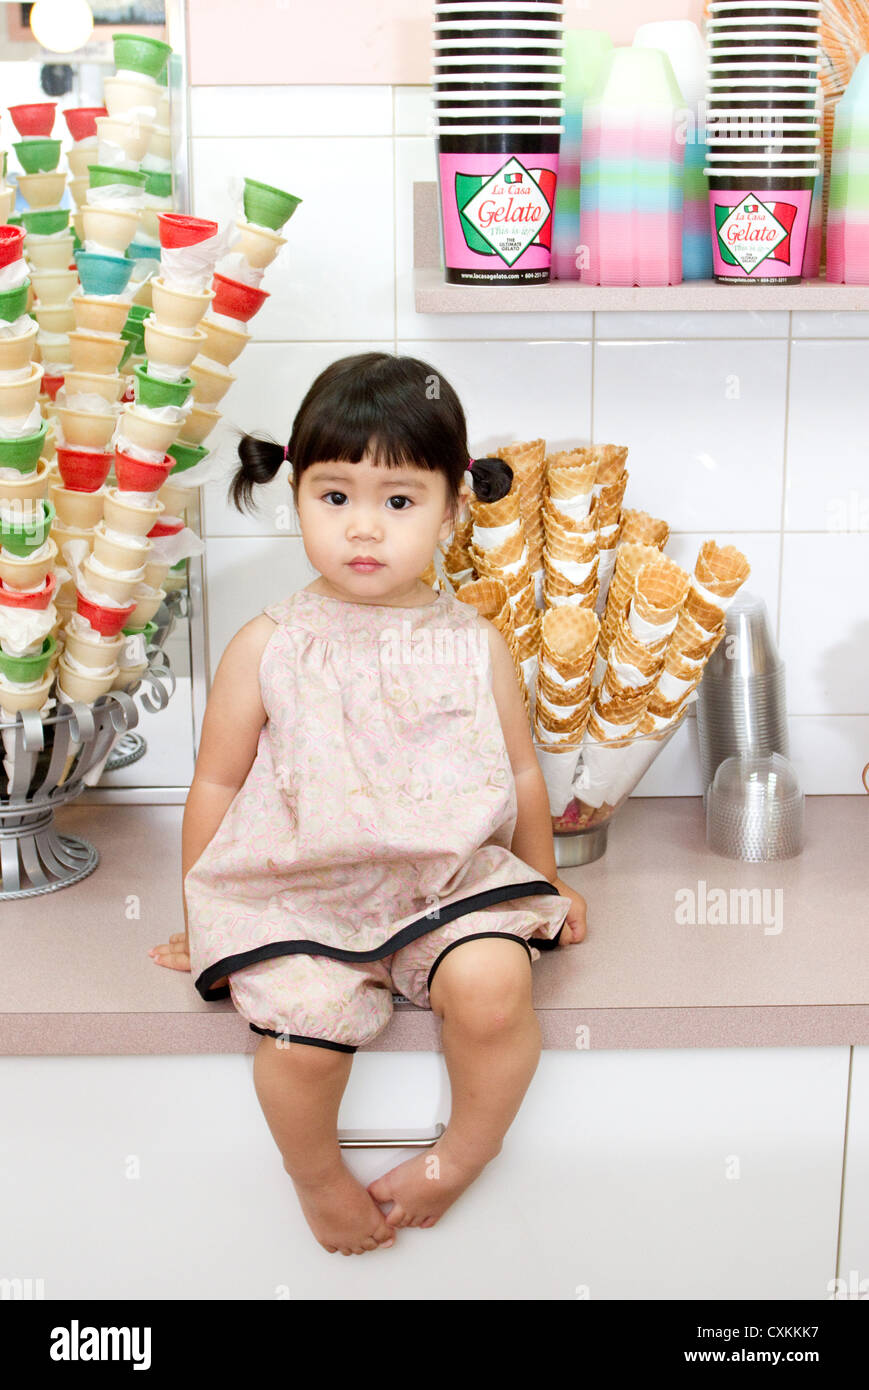 Little girl on counter in ice cream shop - Stock Image